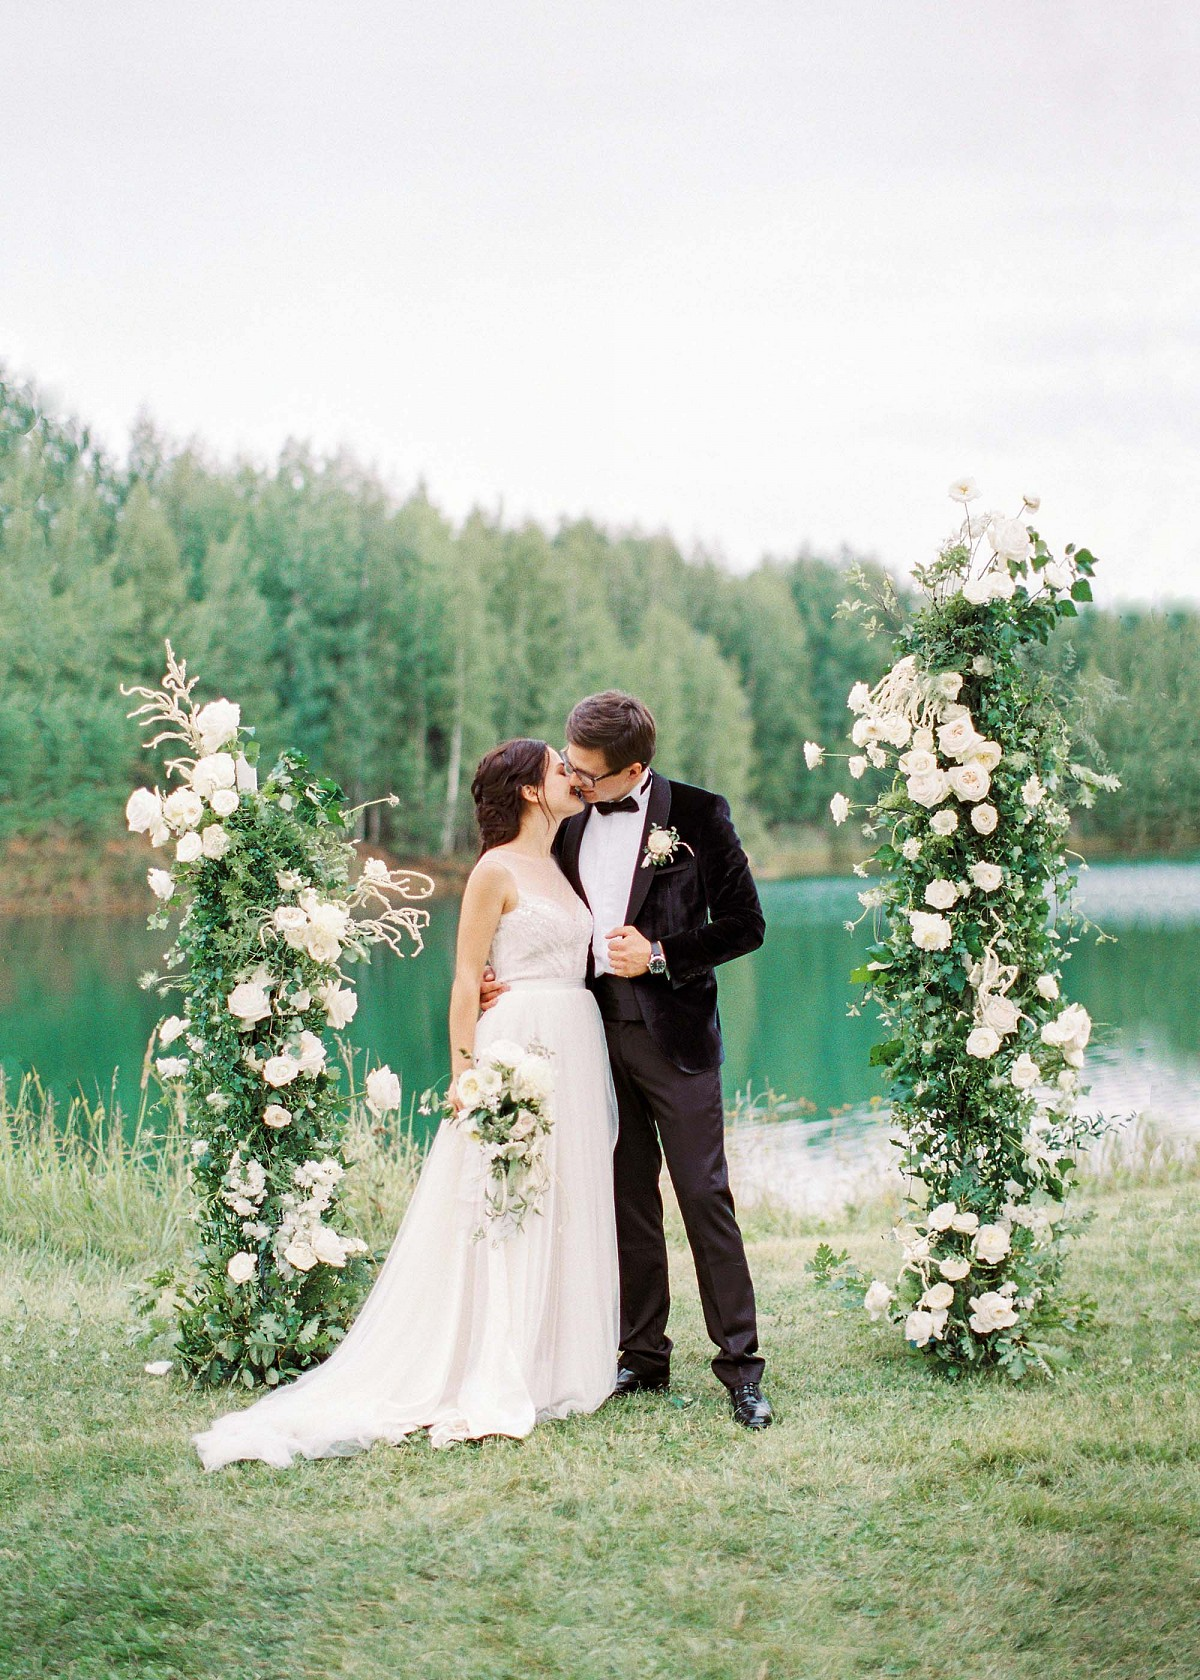 Olga and Alexs meaningful outdoor garden wedding | Wedding Sparrow fine art wedding blog